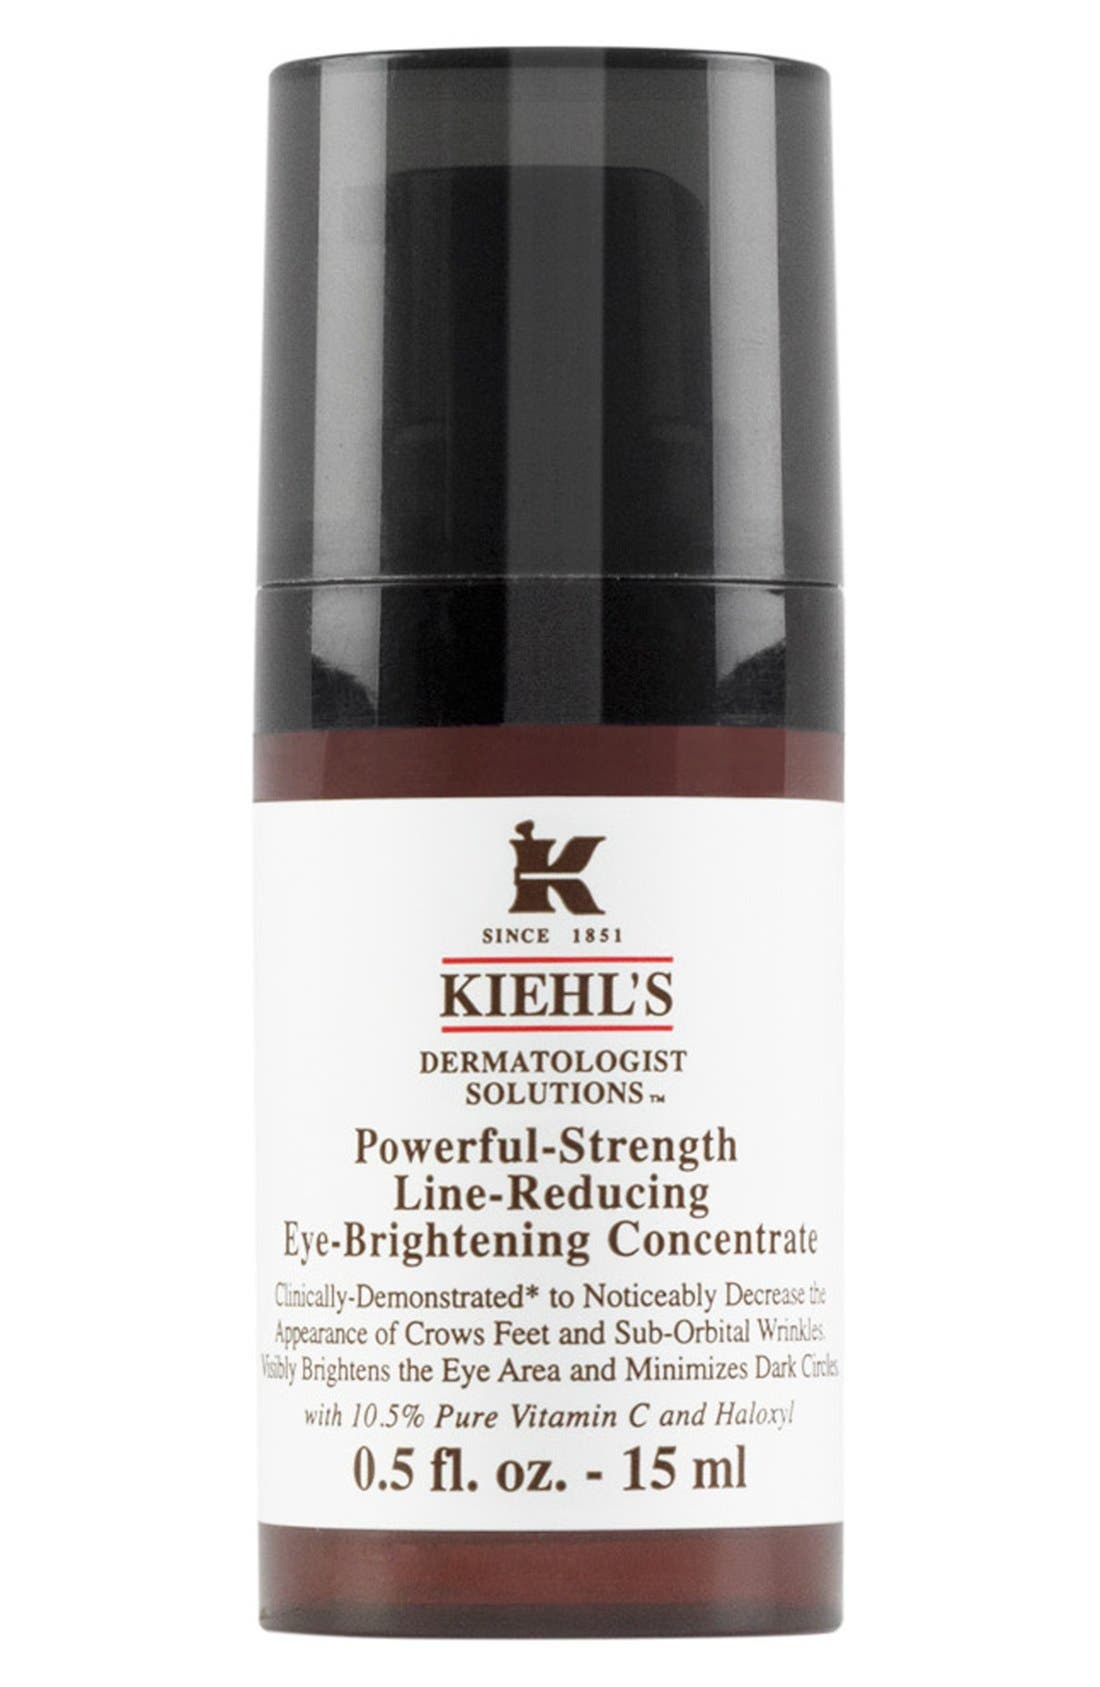 Kiehl'sSince 1851 'Dermatologist Solutions™' Powerful-Strength Line-Reducing Eye-Brightening Concentrate